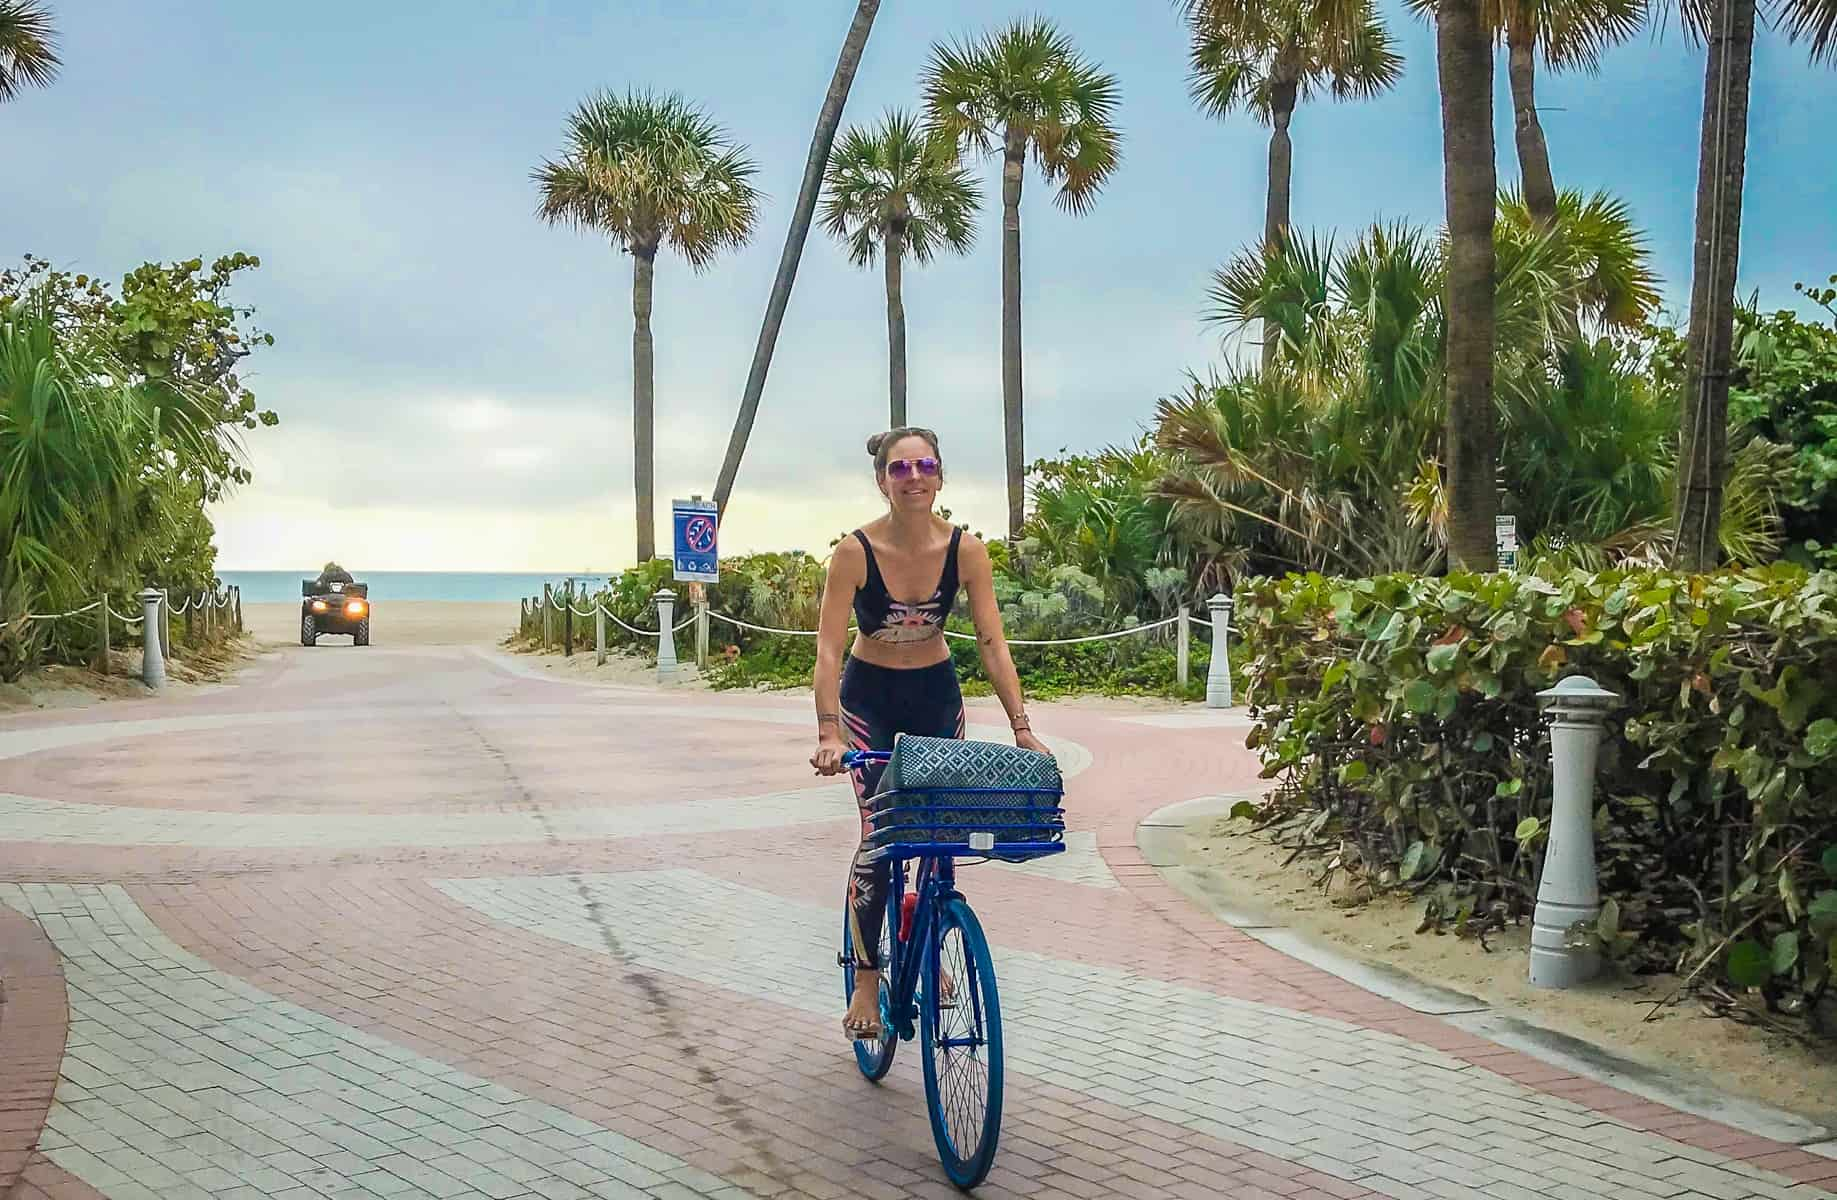 The Best Weekend Getaway in Florida | A Guide to South Beach, Miami